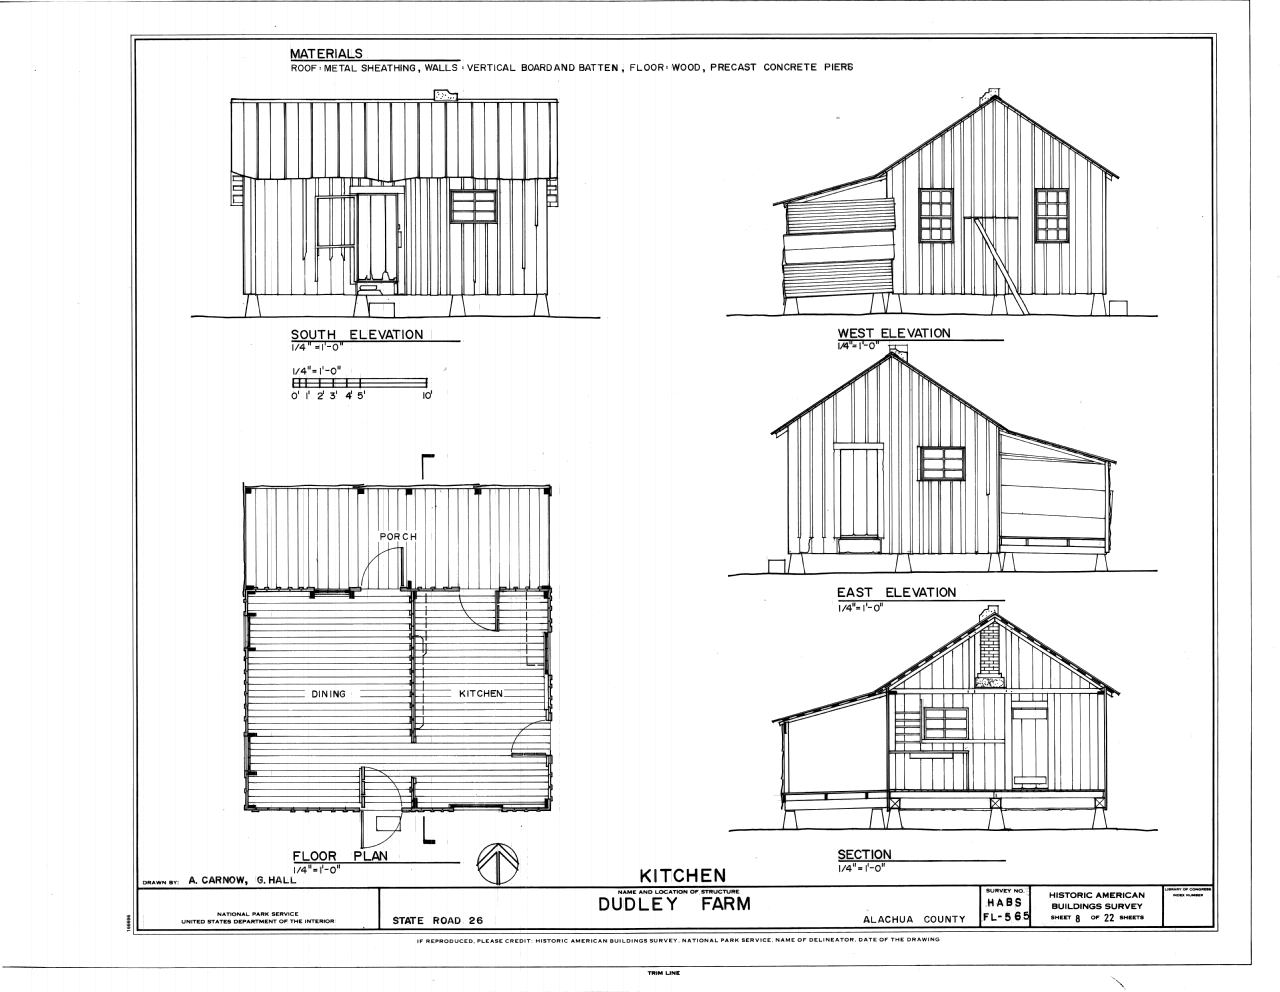 Elevation Plan Section : File kitchen elevations floor plan and section dudley